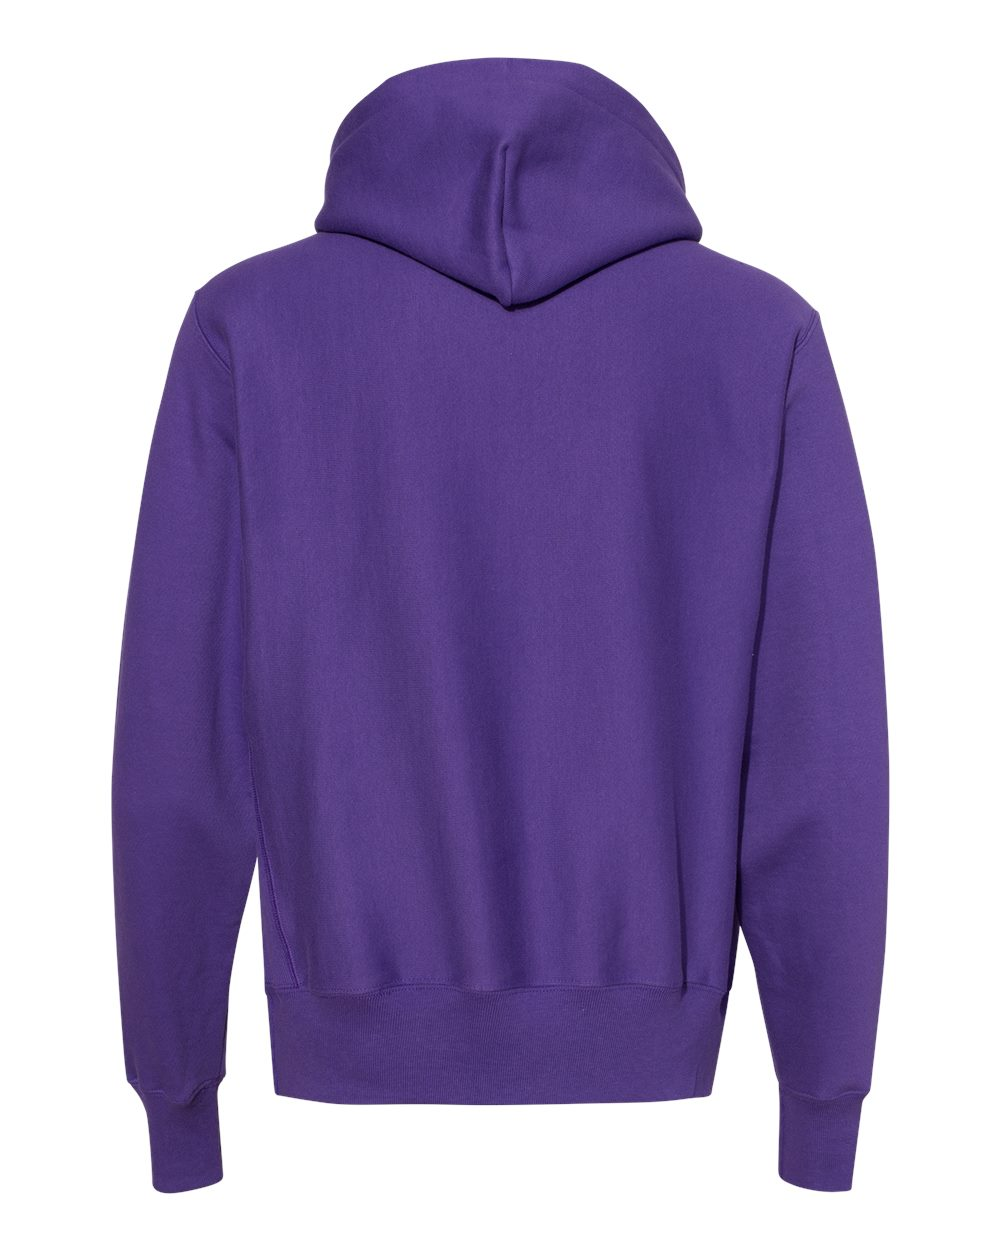 Champion-Mens-Reverse-Weave-Hooded-Pullover-Sweatshirt-S101-up-to-3XL thumbnail 40